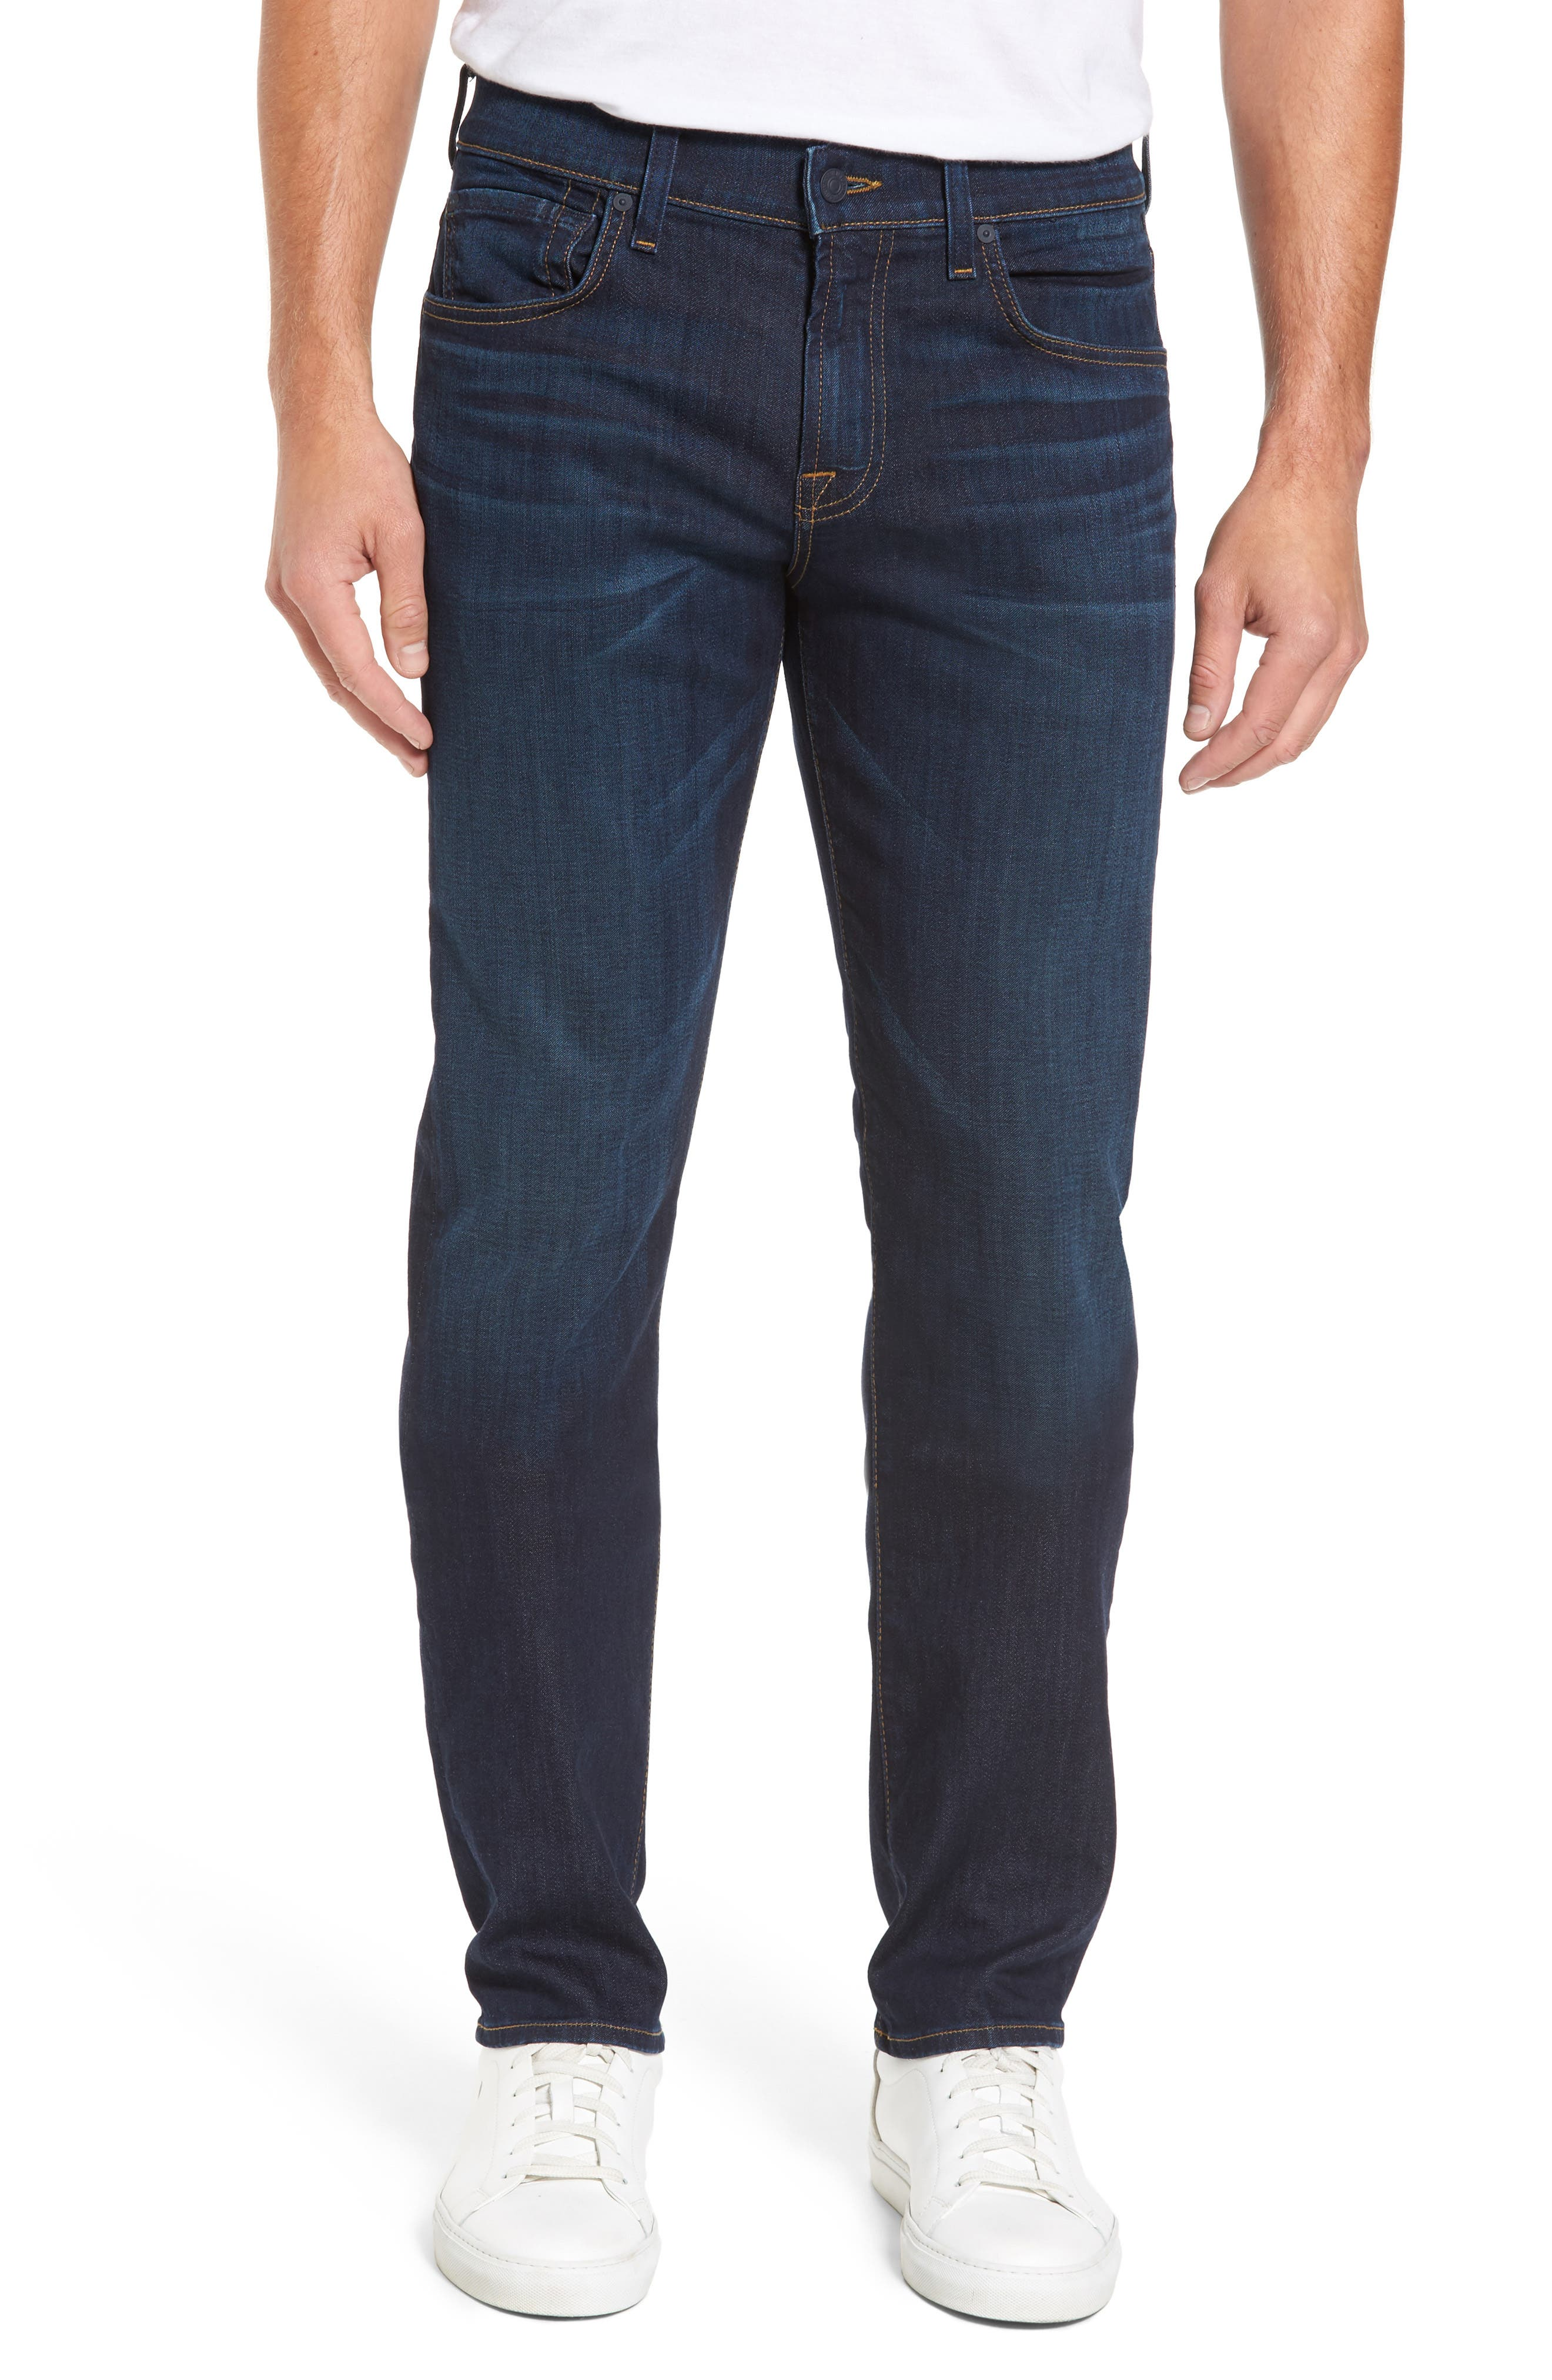 7 FOR ALL MANKIND<SUP>®</SUP>, Luxe Performance Straight Leg Jeans, Main thumbnail 1, color, NORTH PACIFIC